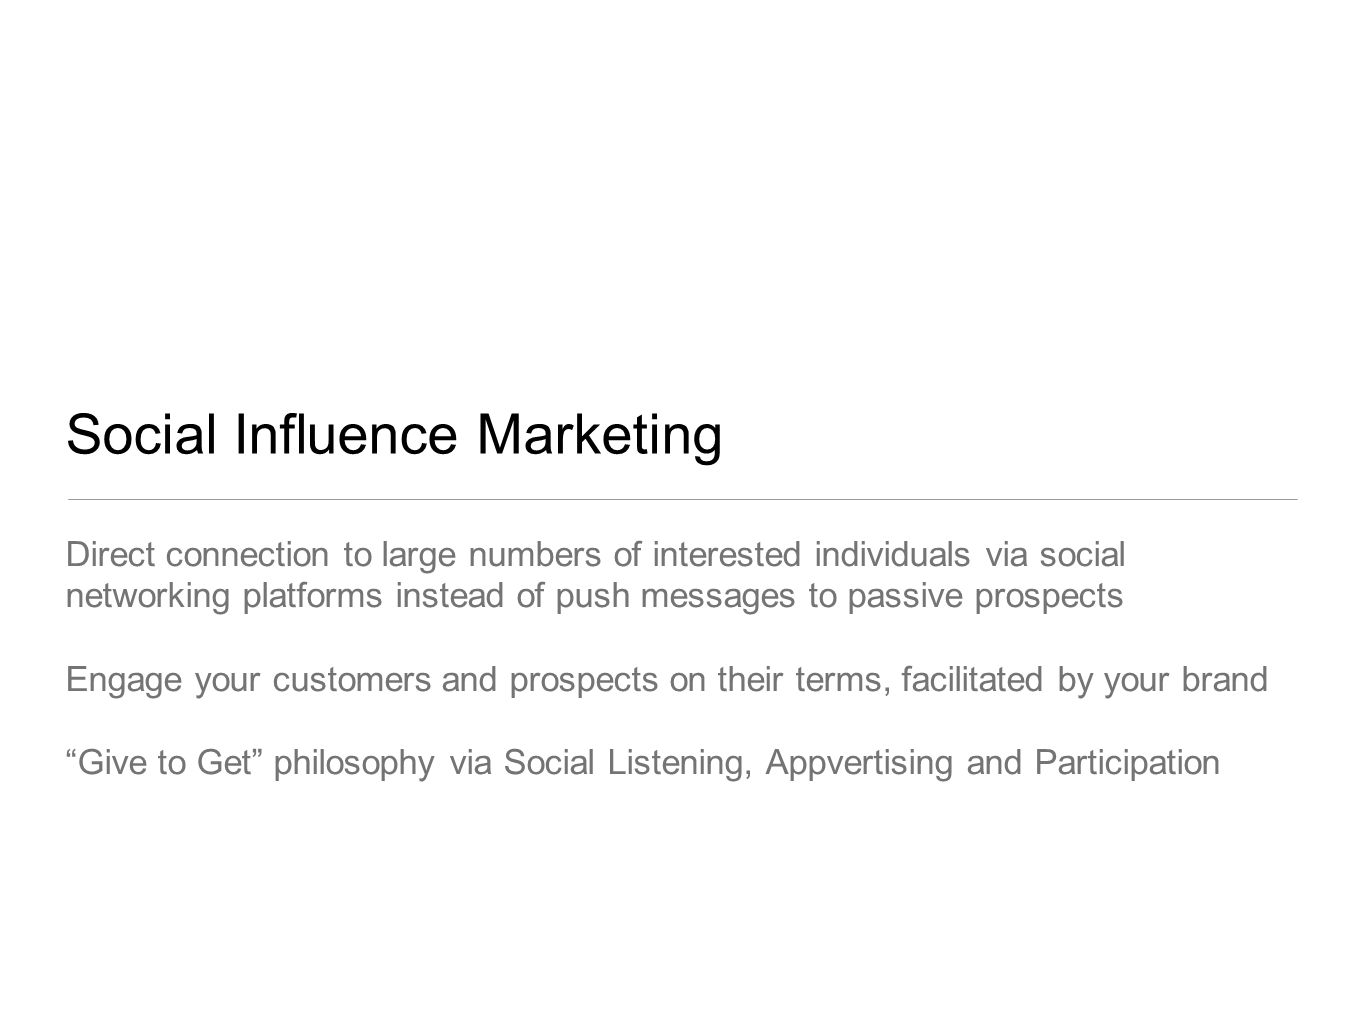 Social Influence Marketing Direct connection to large numbers of interested individuals via social networking platforms instead of push messages to passive prospects Engage your customers and prospects on their terms, facilitated by your brand Give to Get philosophy via Social Listening, Appvertising and Participation